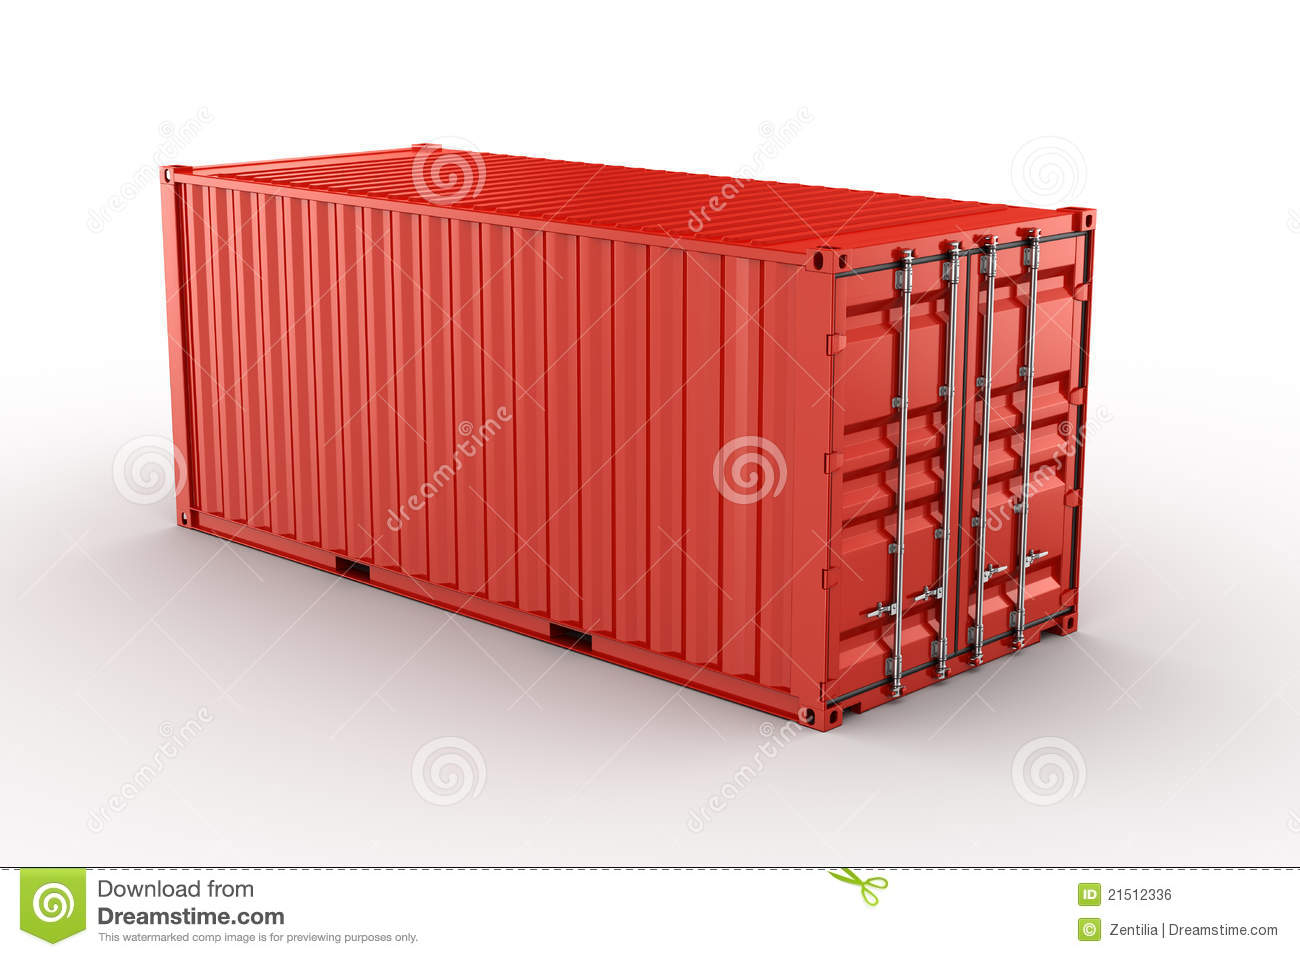 shipping container royalty free stock image image 21512336. Black Bedroom Furniture Sets. Home Design Ideas